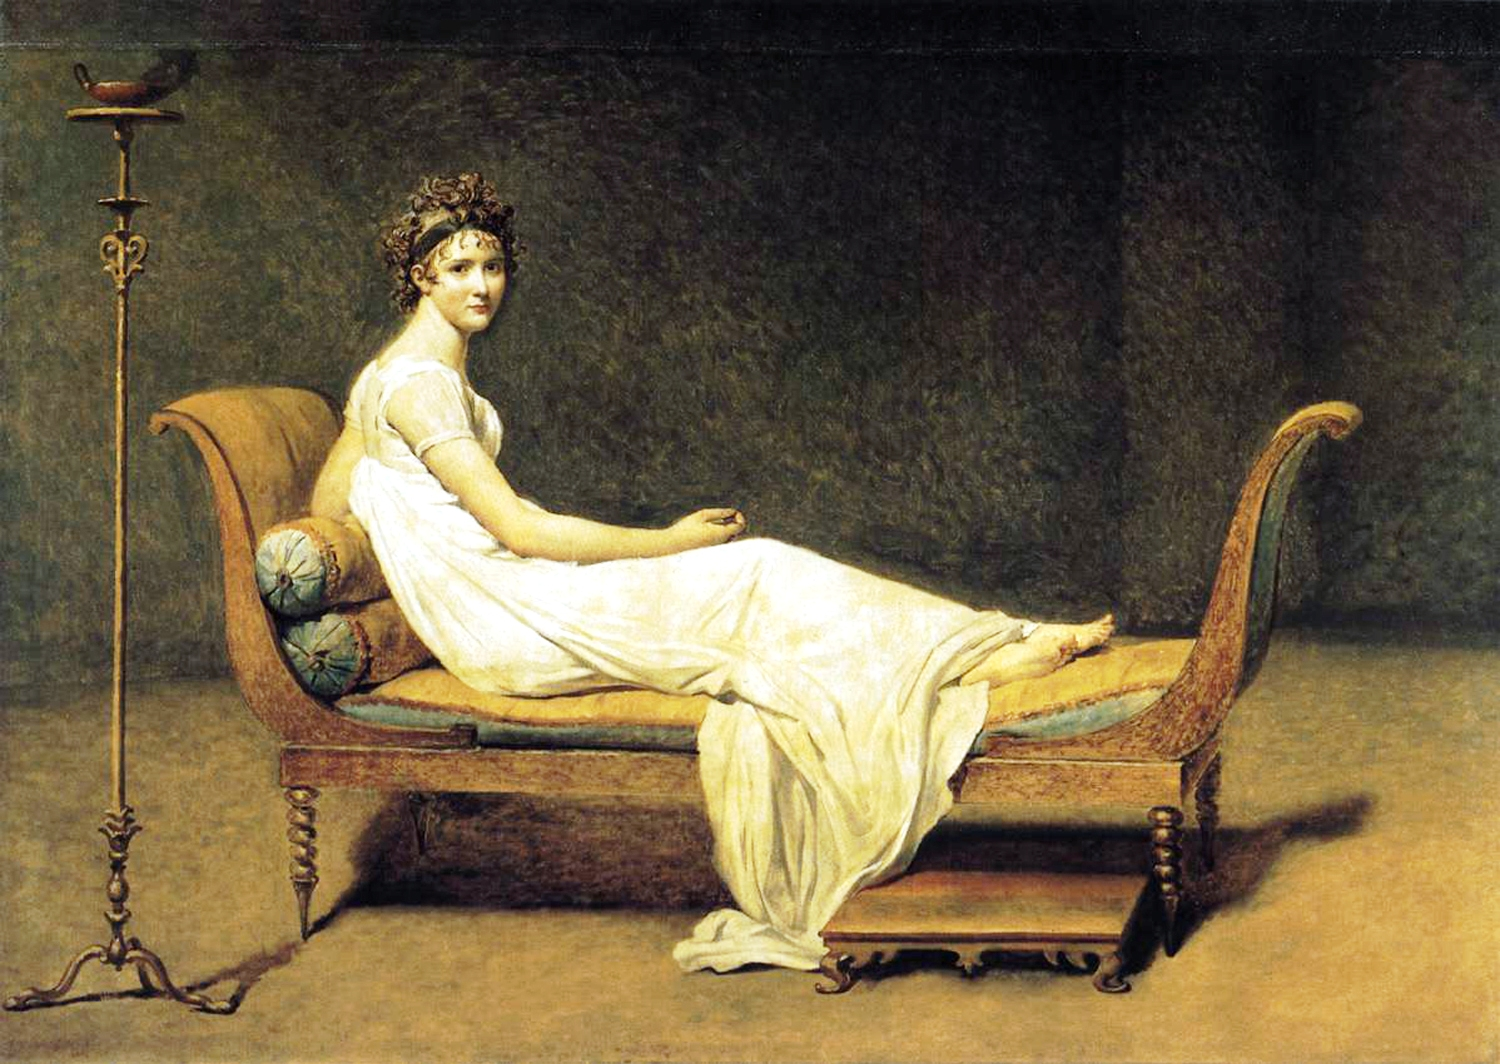 Madame Récamier, retrato de Jacques-Louis David en 1800